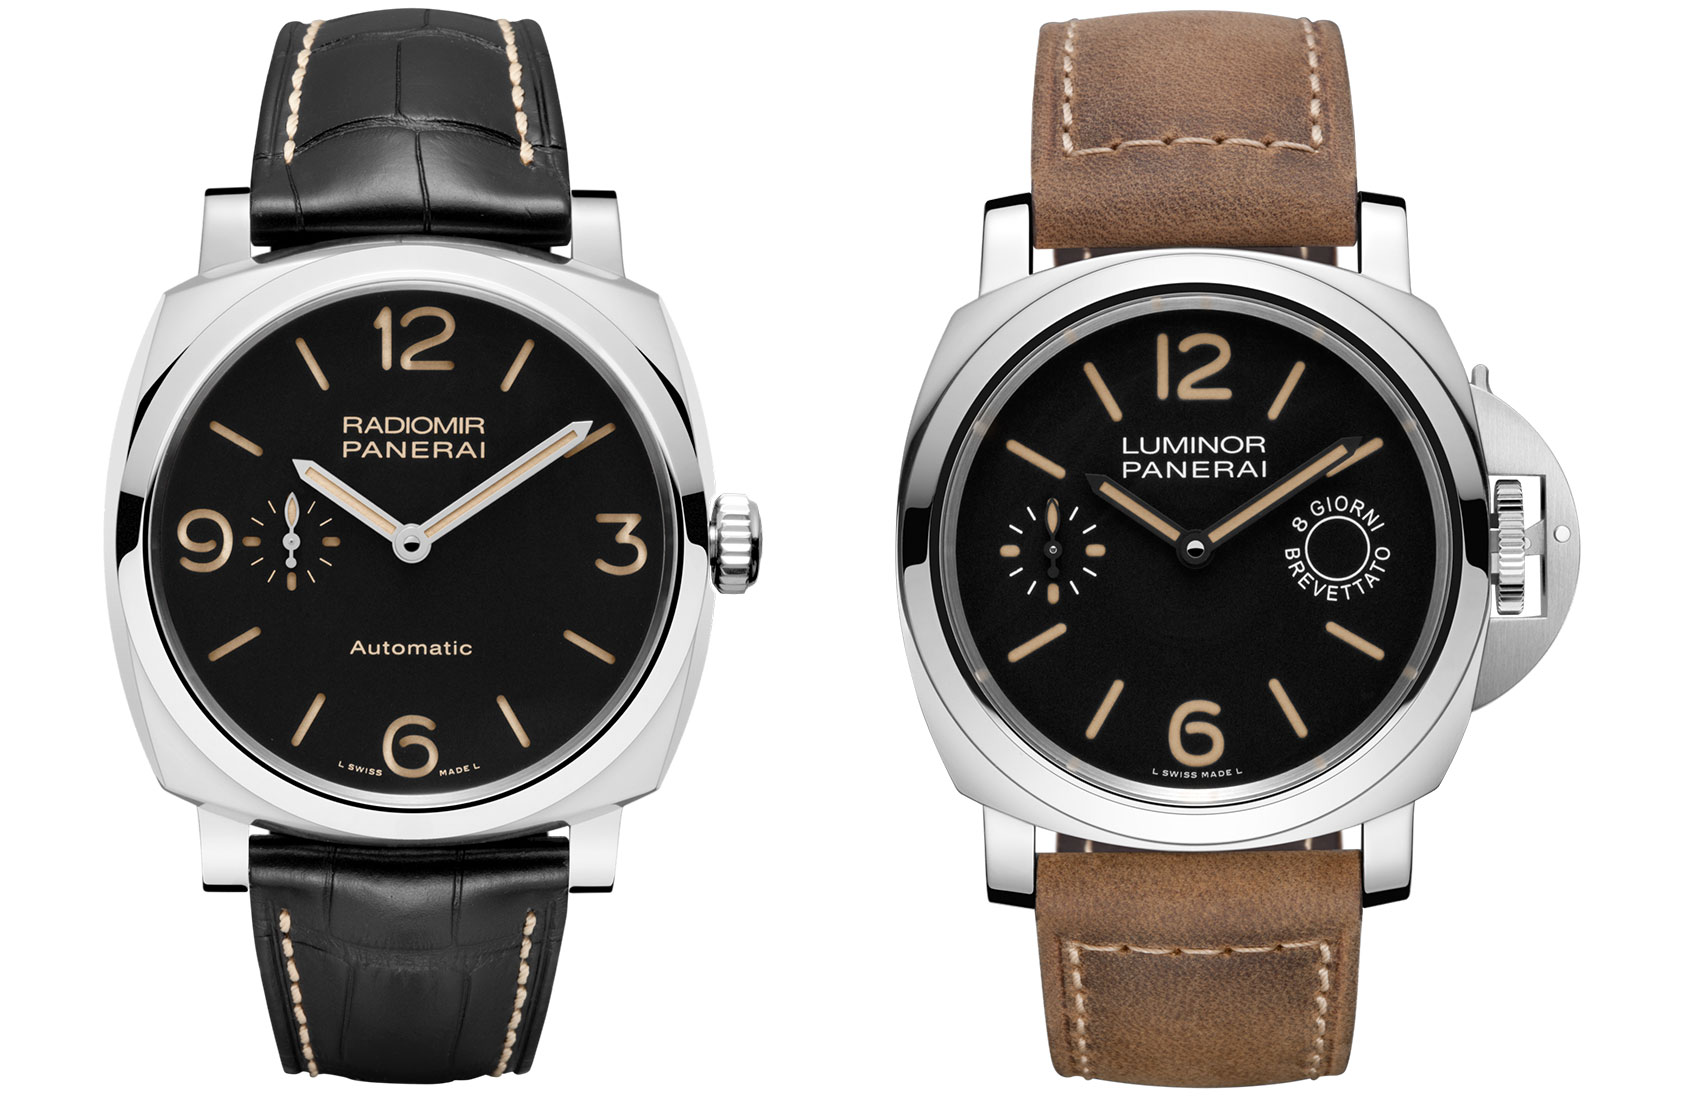 VIDEO: Radiomir or Luminor, which Panerai is right for you? The ultimate explainer is here